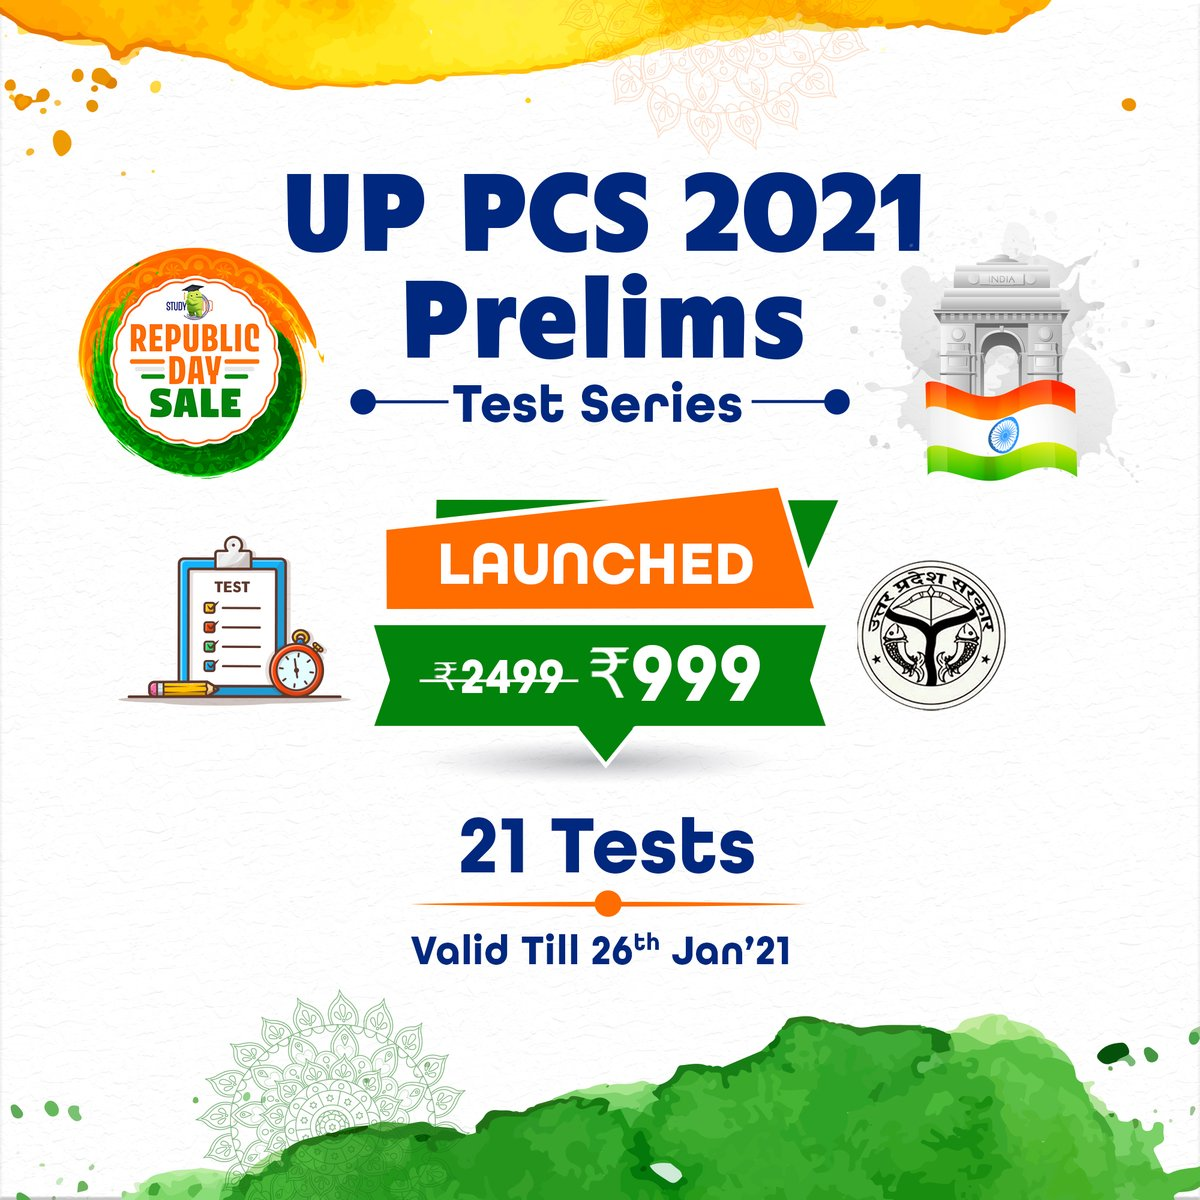 StudyIQ has launched #UPPSC 2021 Prelims test series covering basic level #NCERT tests, application-based Sectional Tests, simulative mock tests. I It consists of 21 tests (4 NCERT, 10 Sectional, 3 Revision tests, 4 Full Length tests). To know more, Visit: